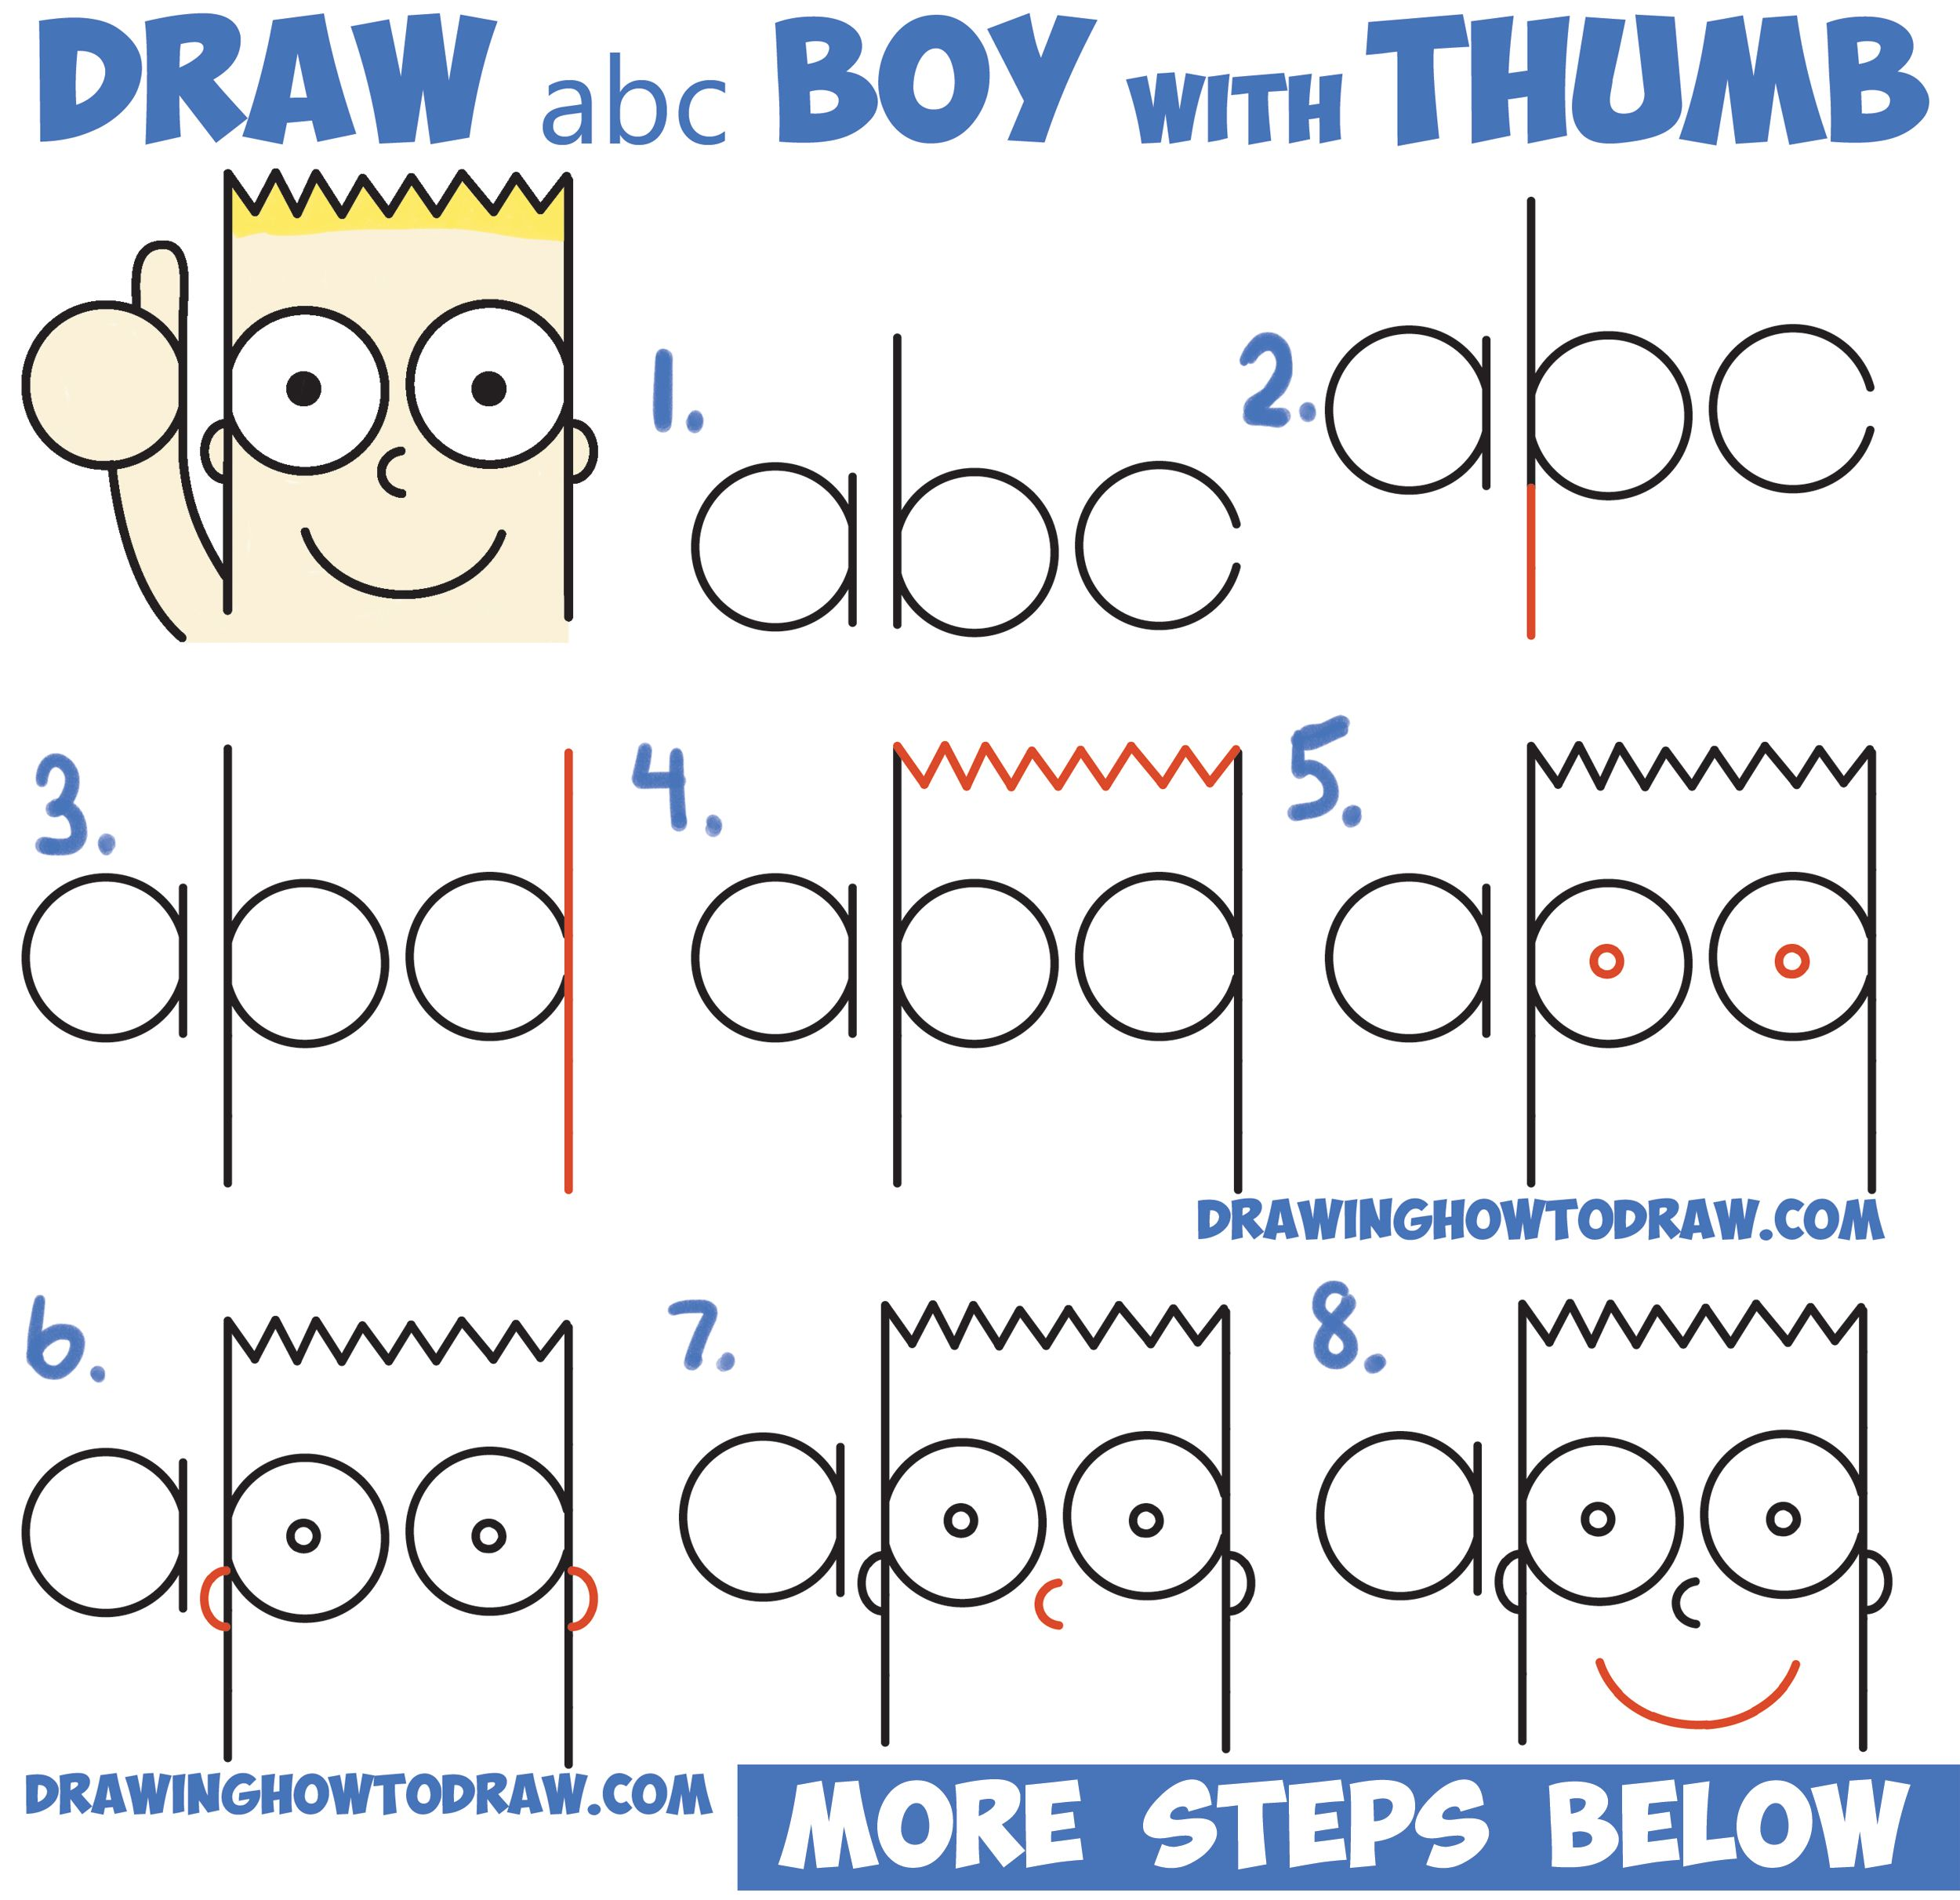 How To Draw Cute Cartoon Boy Kid With Thumb Up From Abc With Easy Step By Step Drawing Tutorial For Kids How To Draw Step By Step Drawing Tutorials